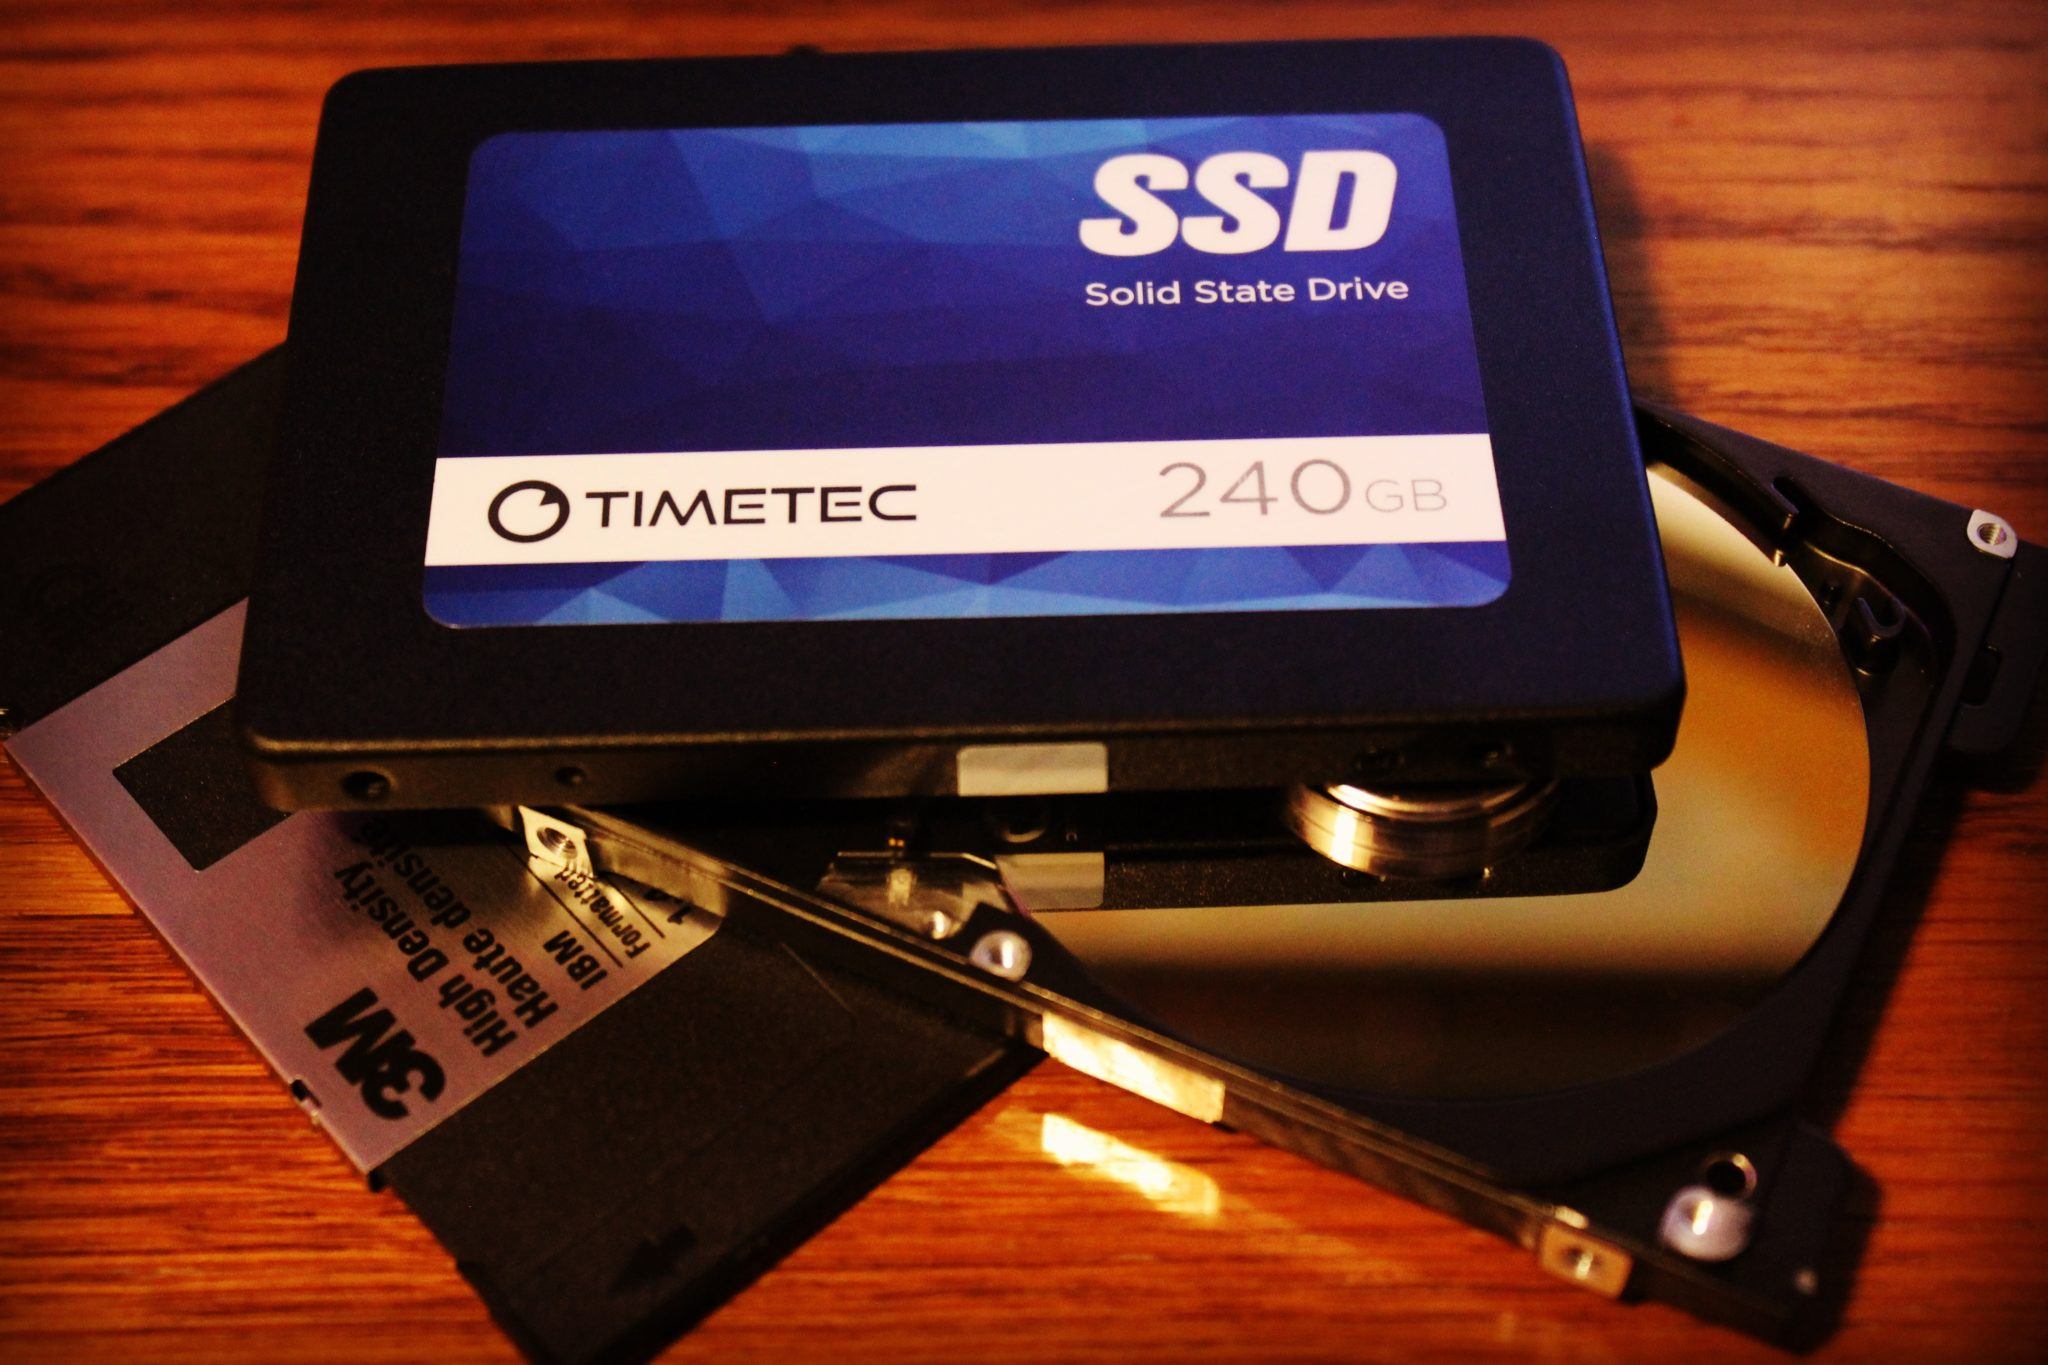 TIMETEC SSD 240GB review